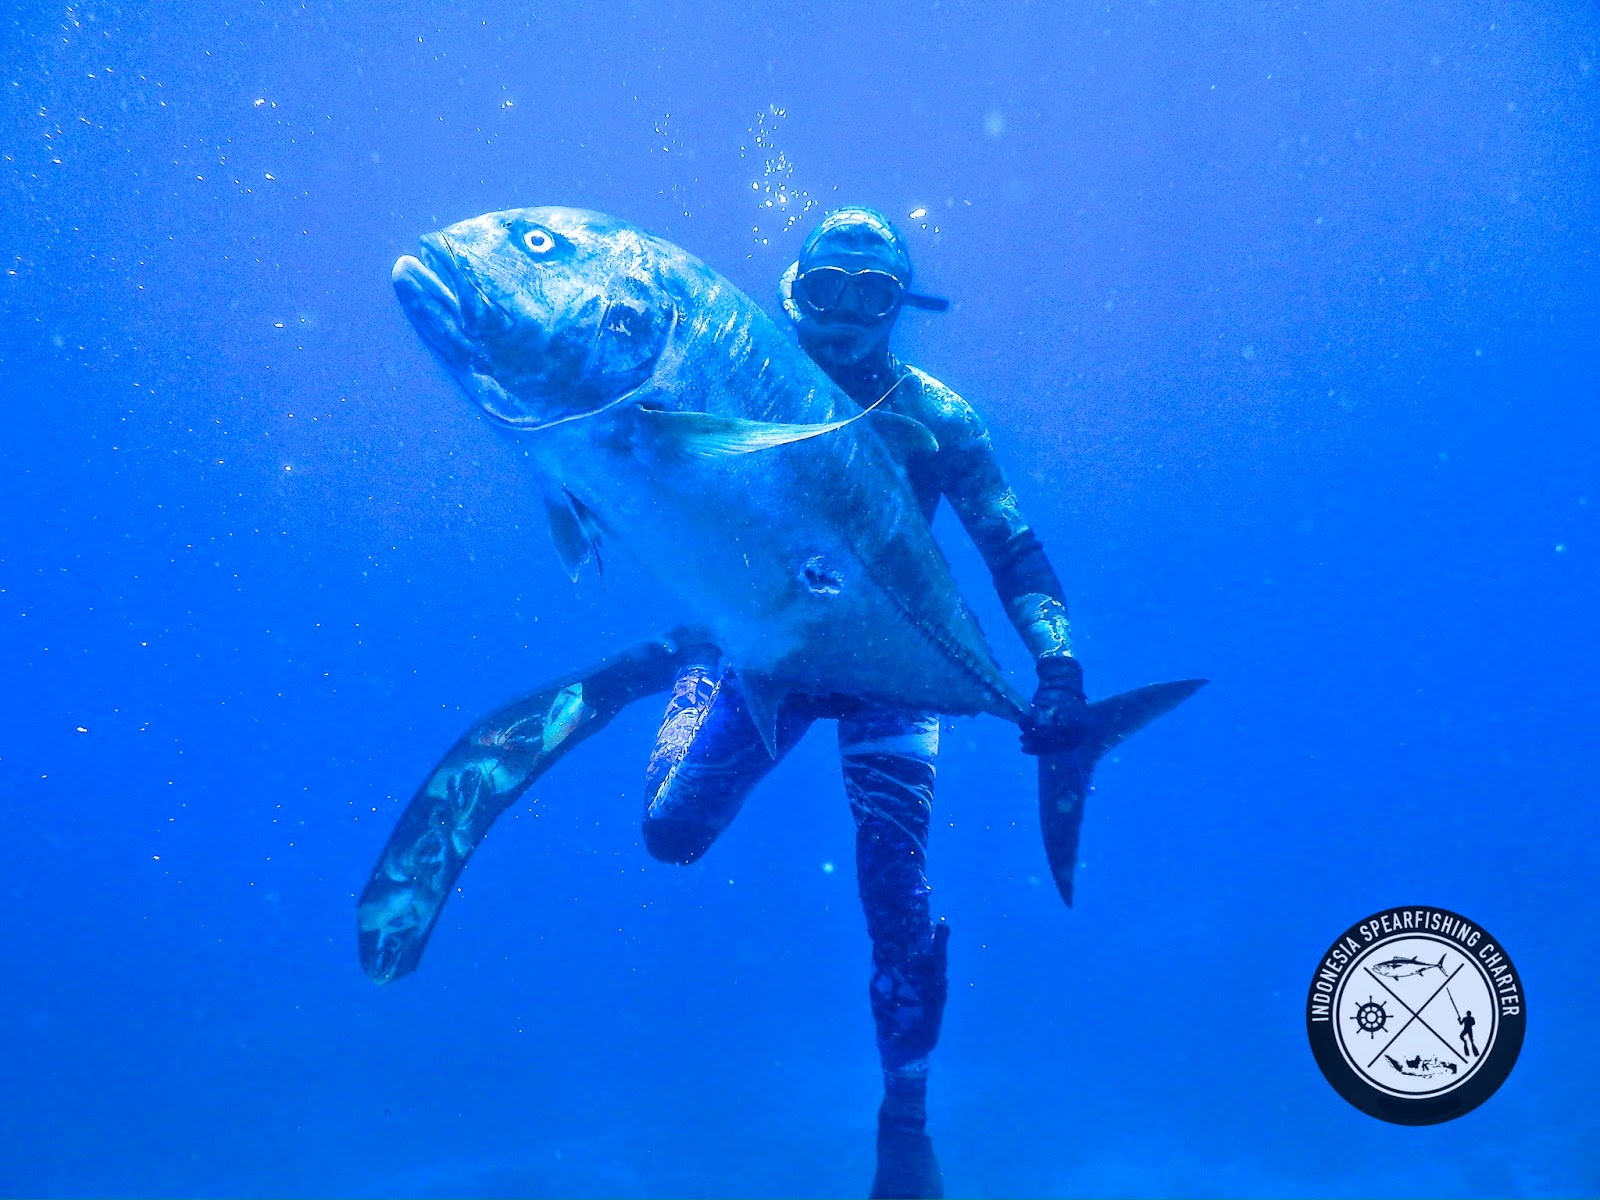 Spearfishing Bali Indonesia, Nusa Penida , Amed GT, Giant Trevally, Dogtooth Tuna, Parrotfish, Coronation Trout, Bluefin Trevally, Black Trevally, Mu, Barracuda, Mu, Maori Seaperch, rainbow runner